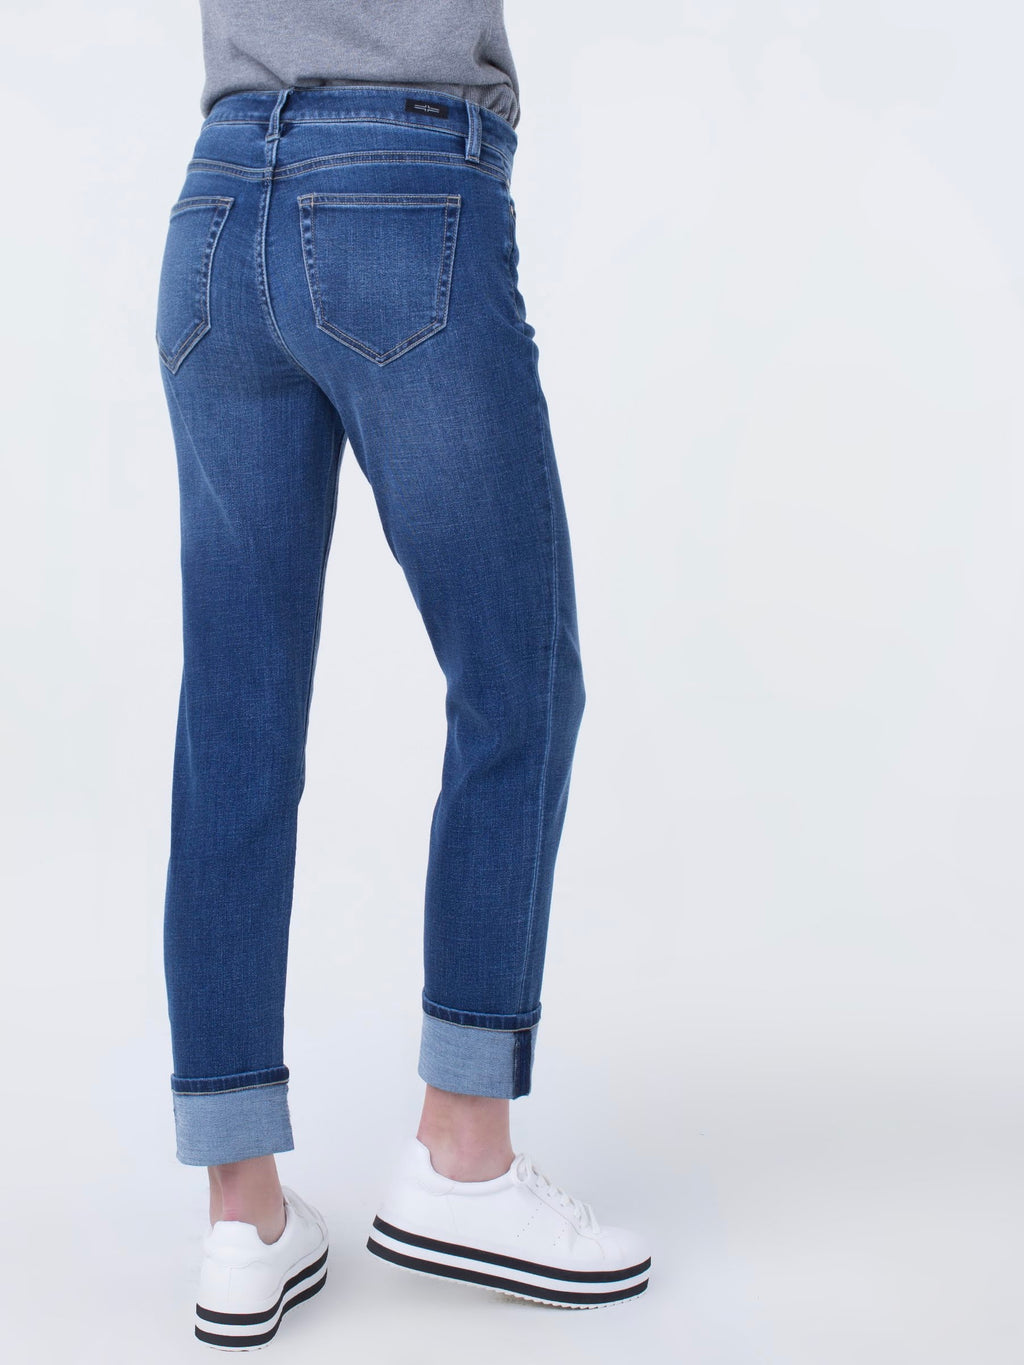 Liverpool Marley Girlfriend Denim